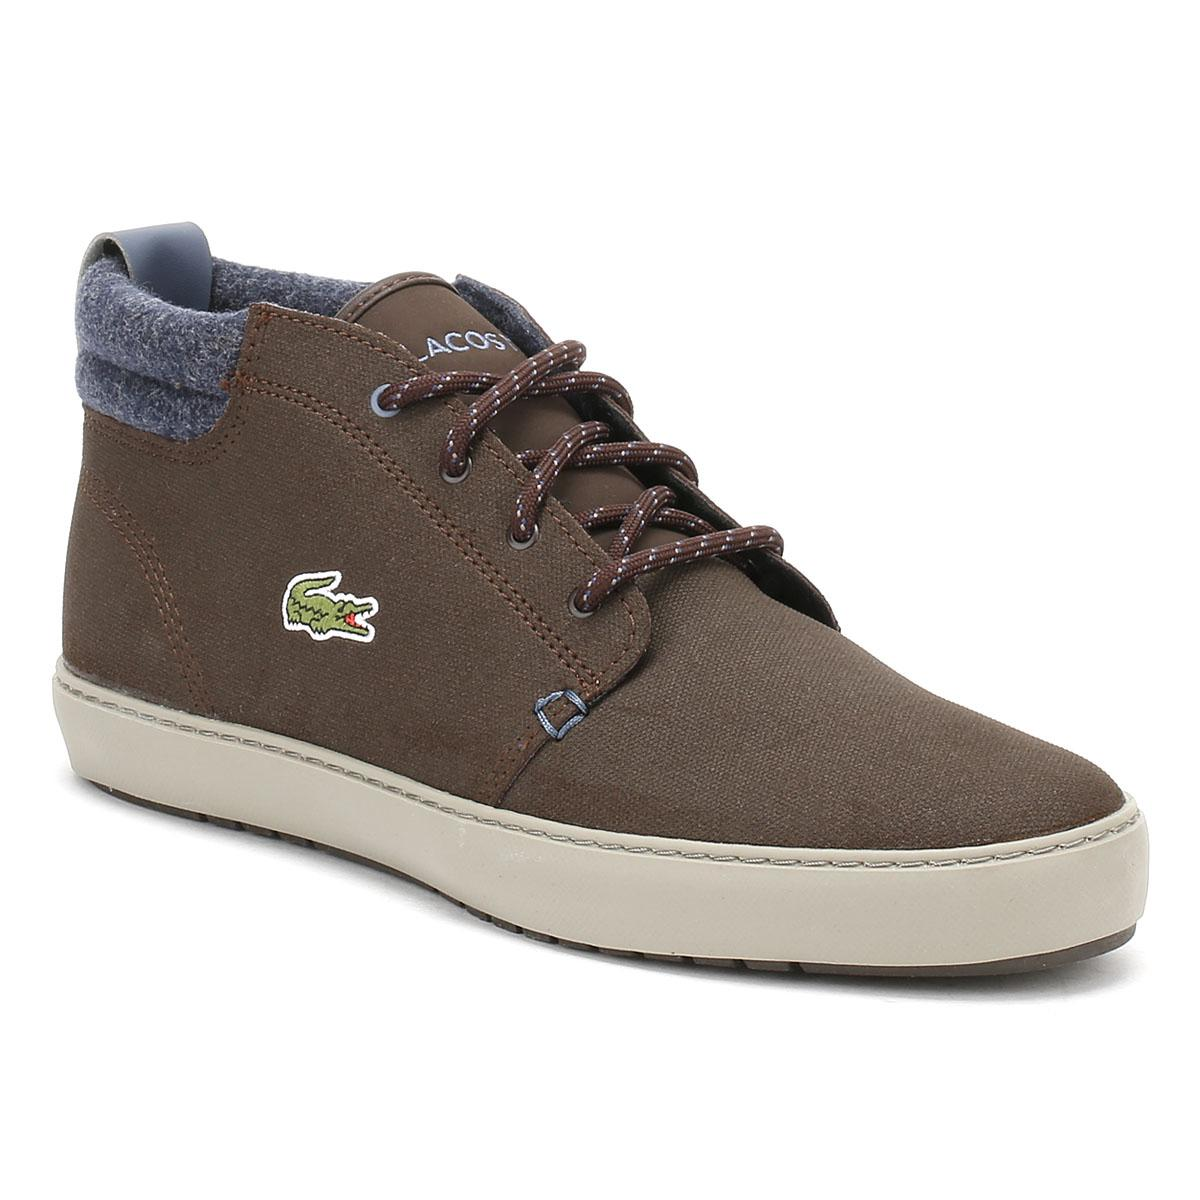 287aefef1 Lyst - Lacoste Mens Dark Brown Ampthill Terra Leather Trainers in ...